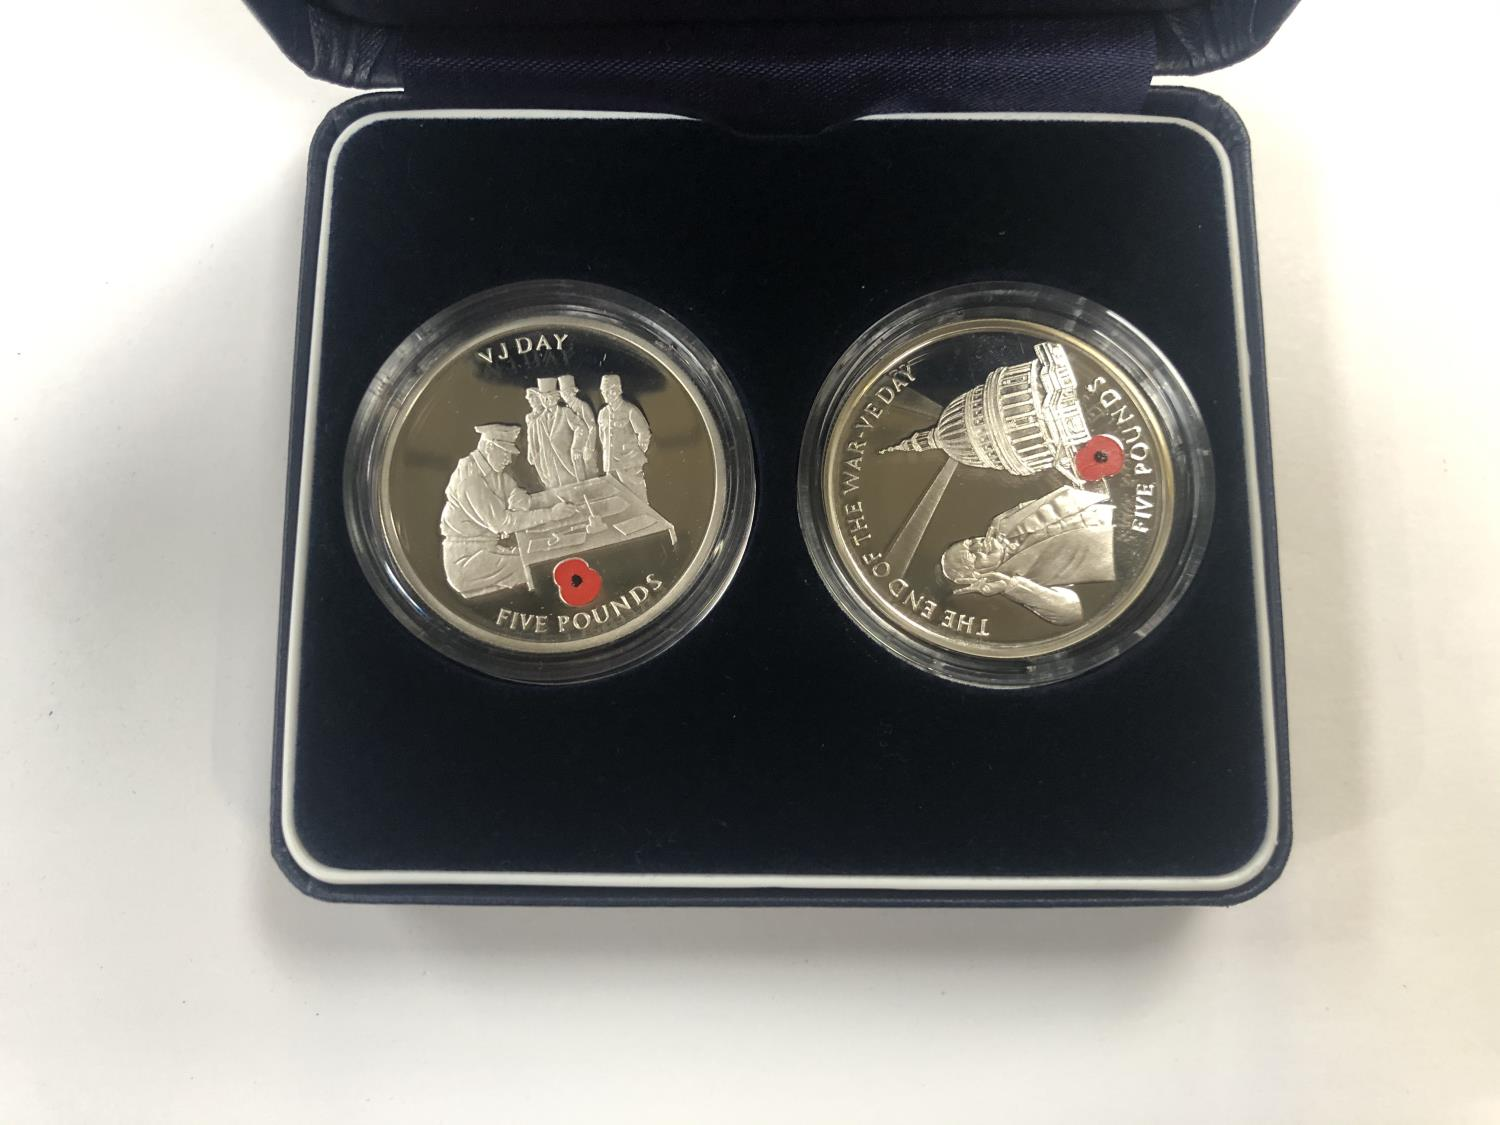 Lot 514 - WESTMINSTER THE VE DAY AND VJ DAY SILVER PROOF COIN PAIR. EACH IS ENCAPSULATED AND PRESENTED IN